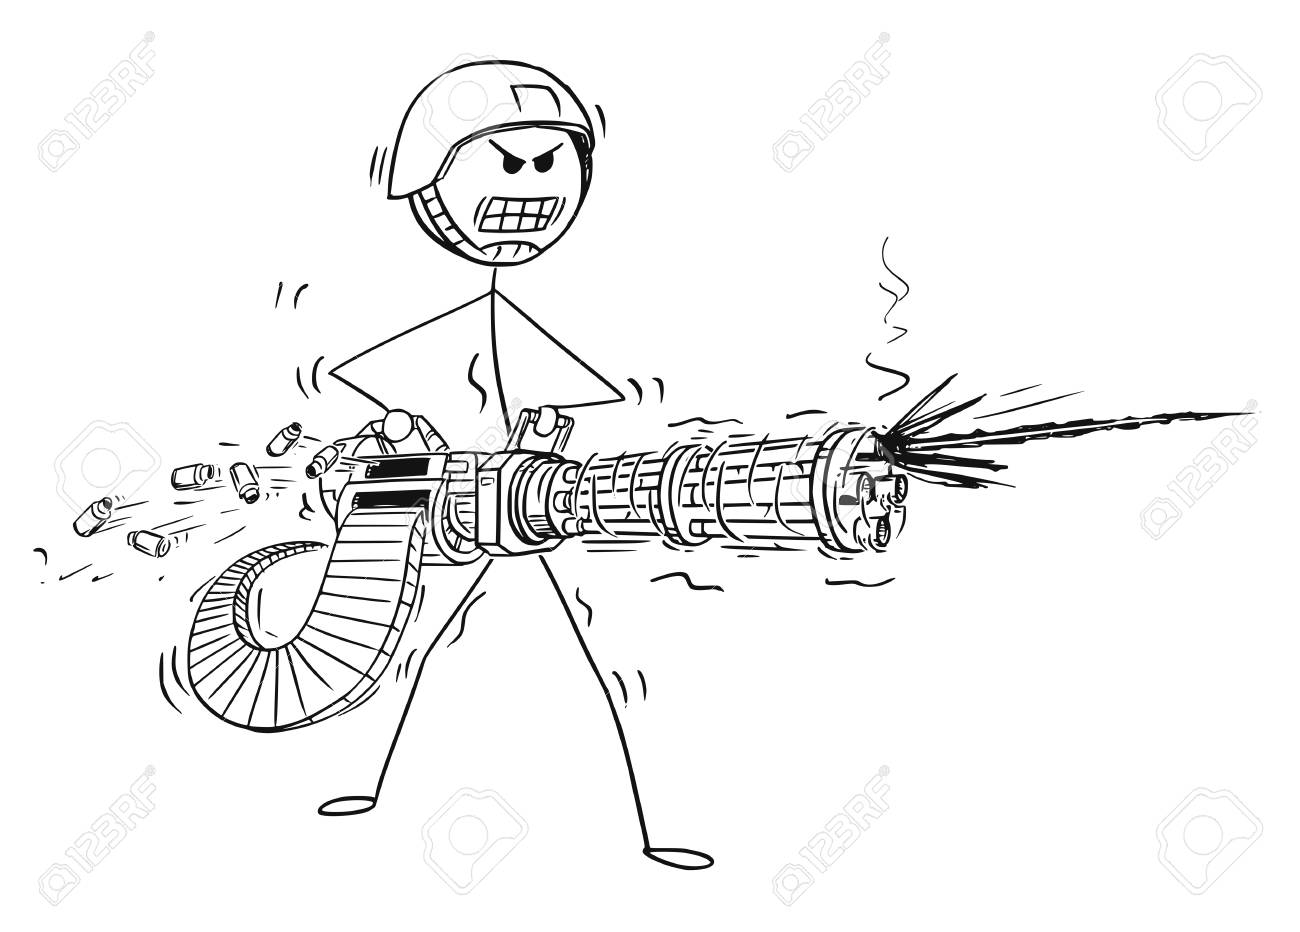 Cartoon Stick Man Drawing Of A Conceptual Illustration Of A Soldier